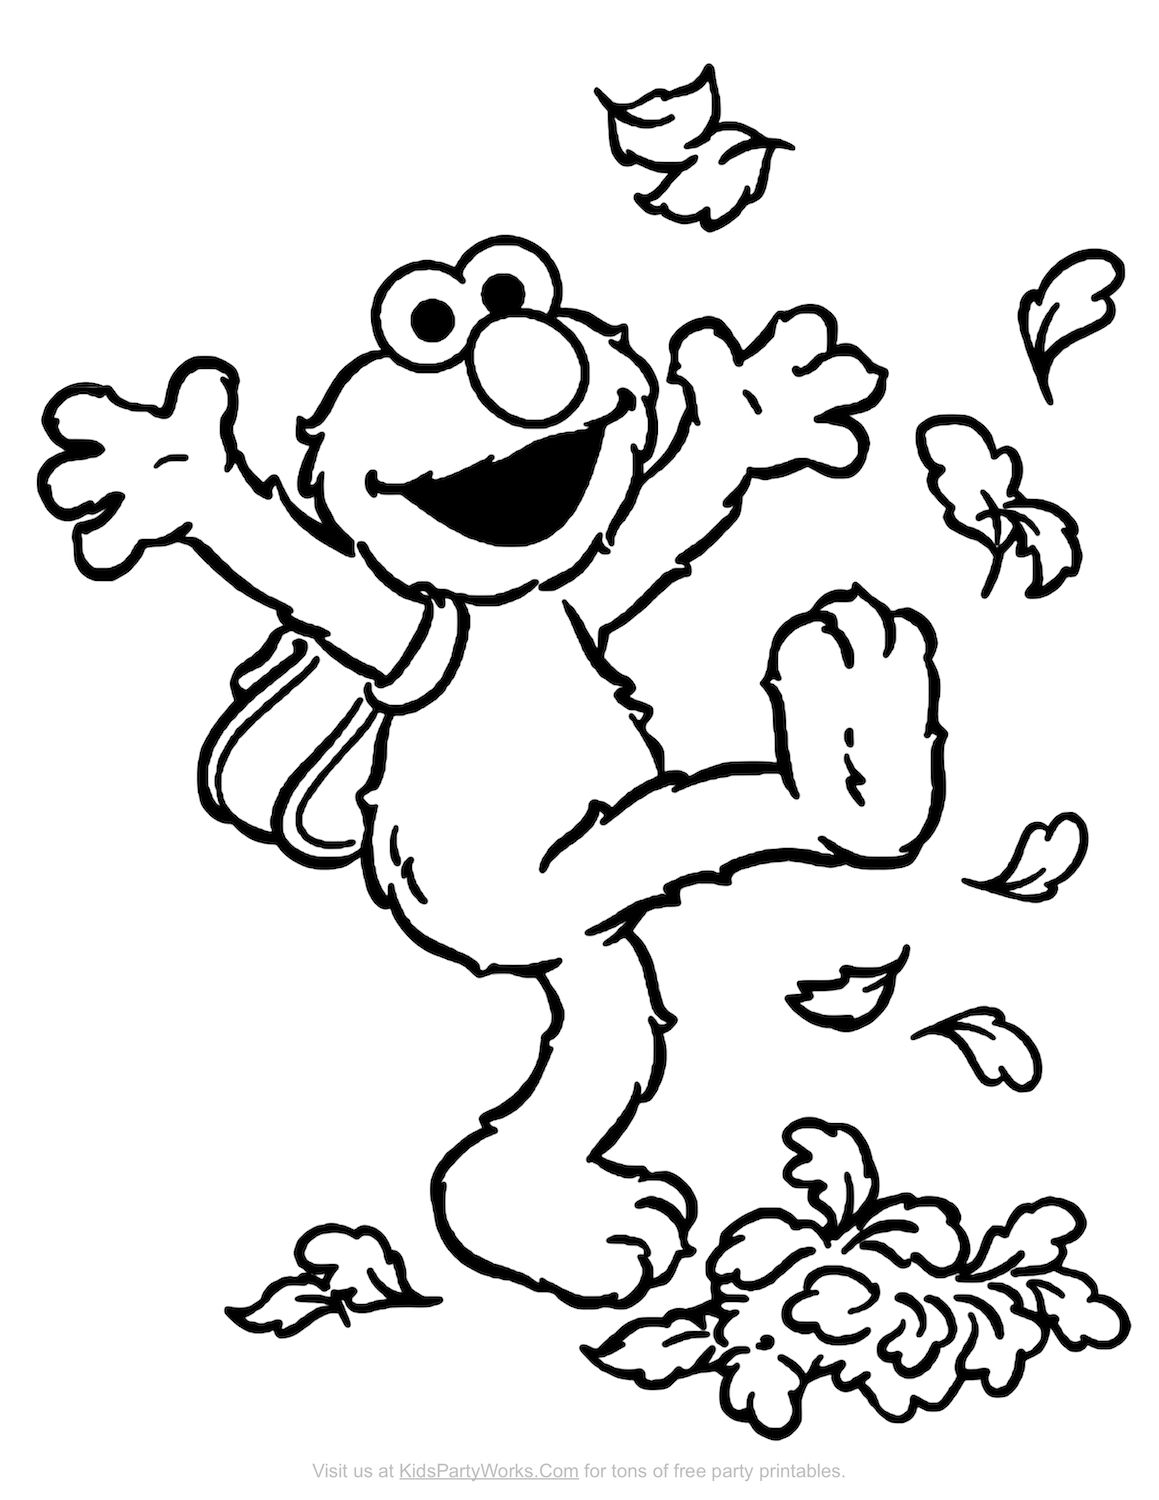 Elmo Coloring Page Elmo Thanksgiving 225 Free Thanksgiving Printables For Kids Thanksgiving Coloring Pages Sesame Street Coloring Pages Elmo Coloring Pages